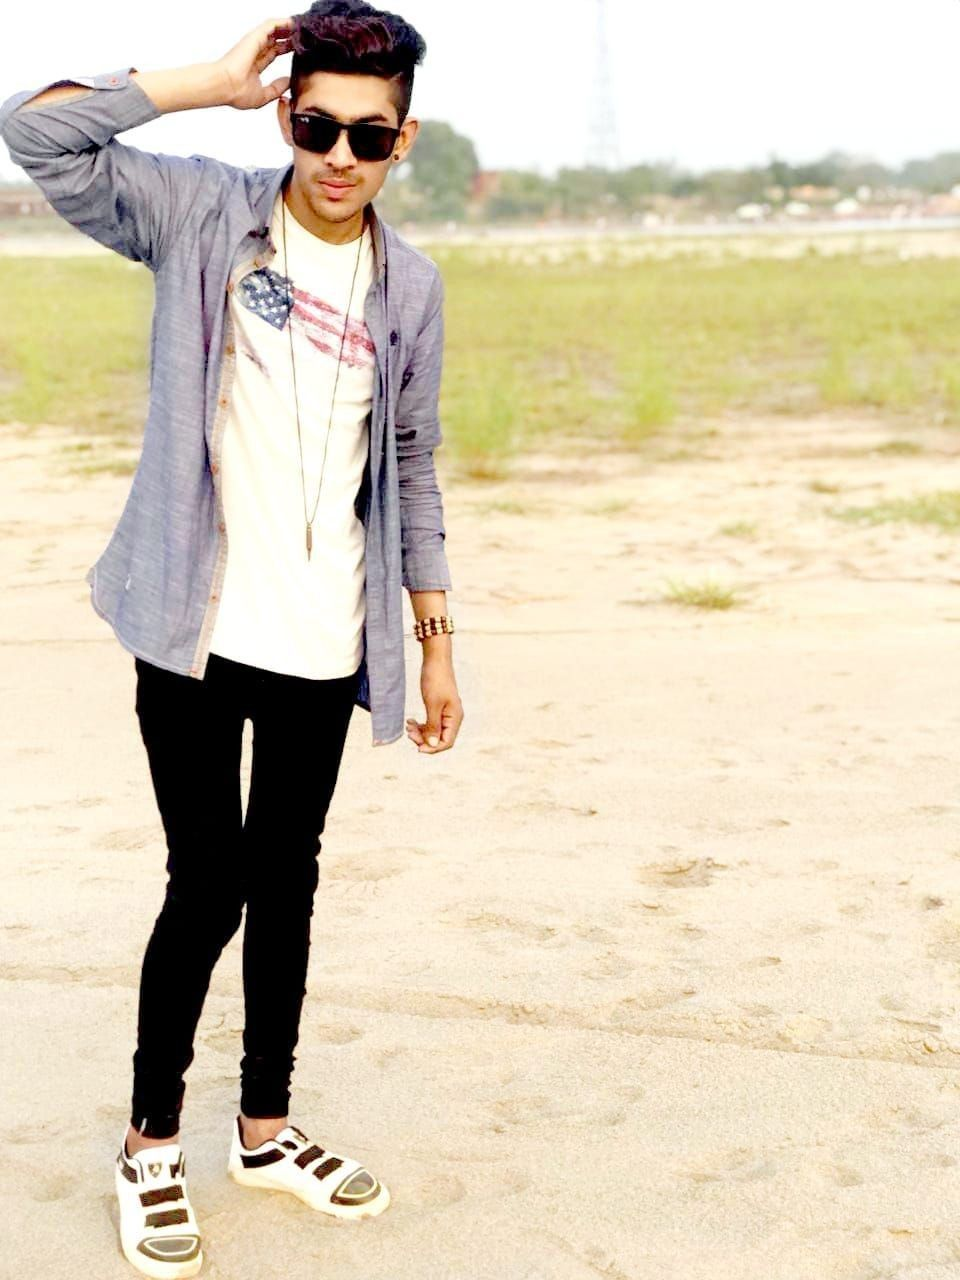 Model stylish boy pictures